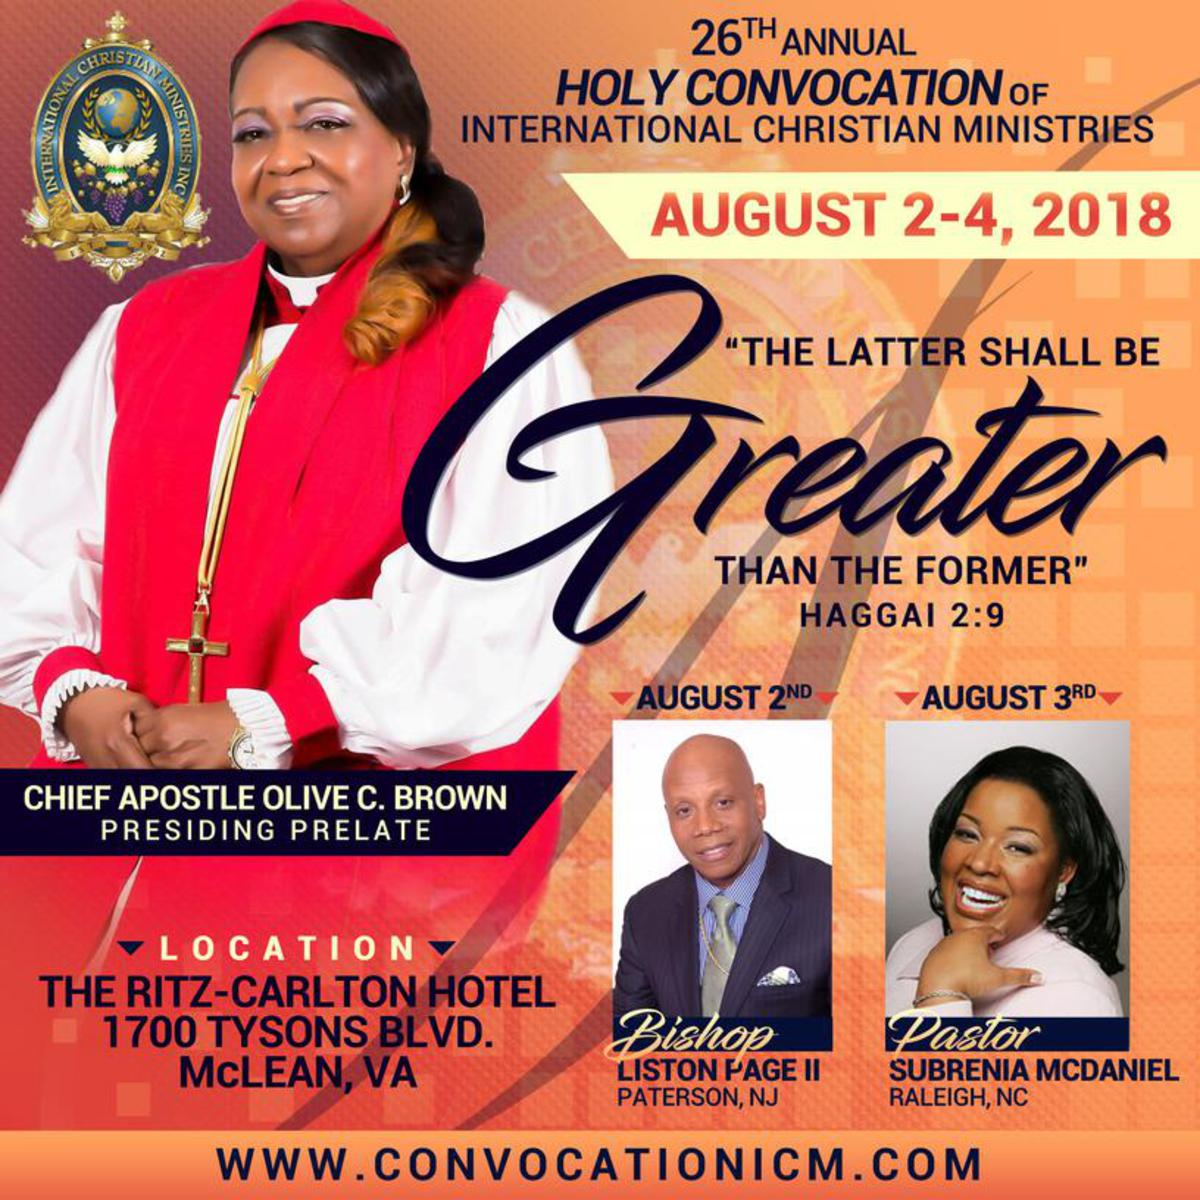 26th Annual Holy Convocation